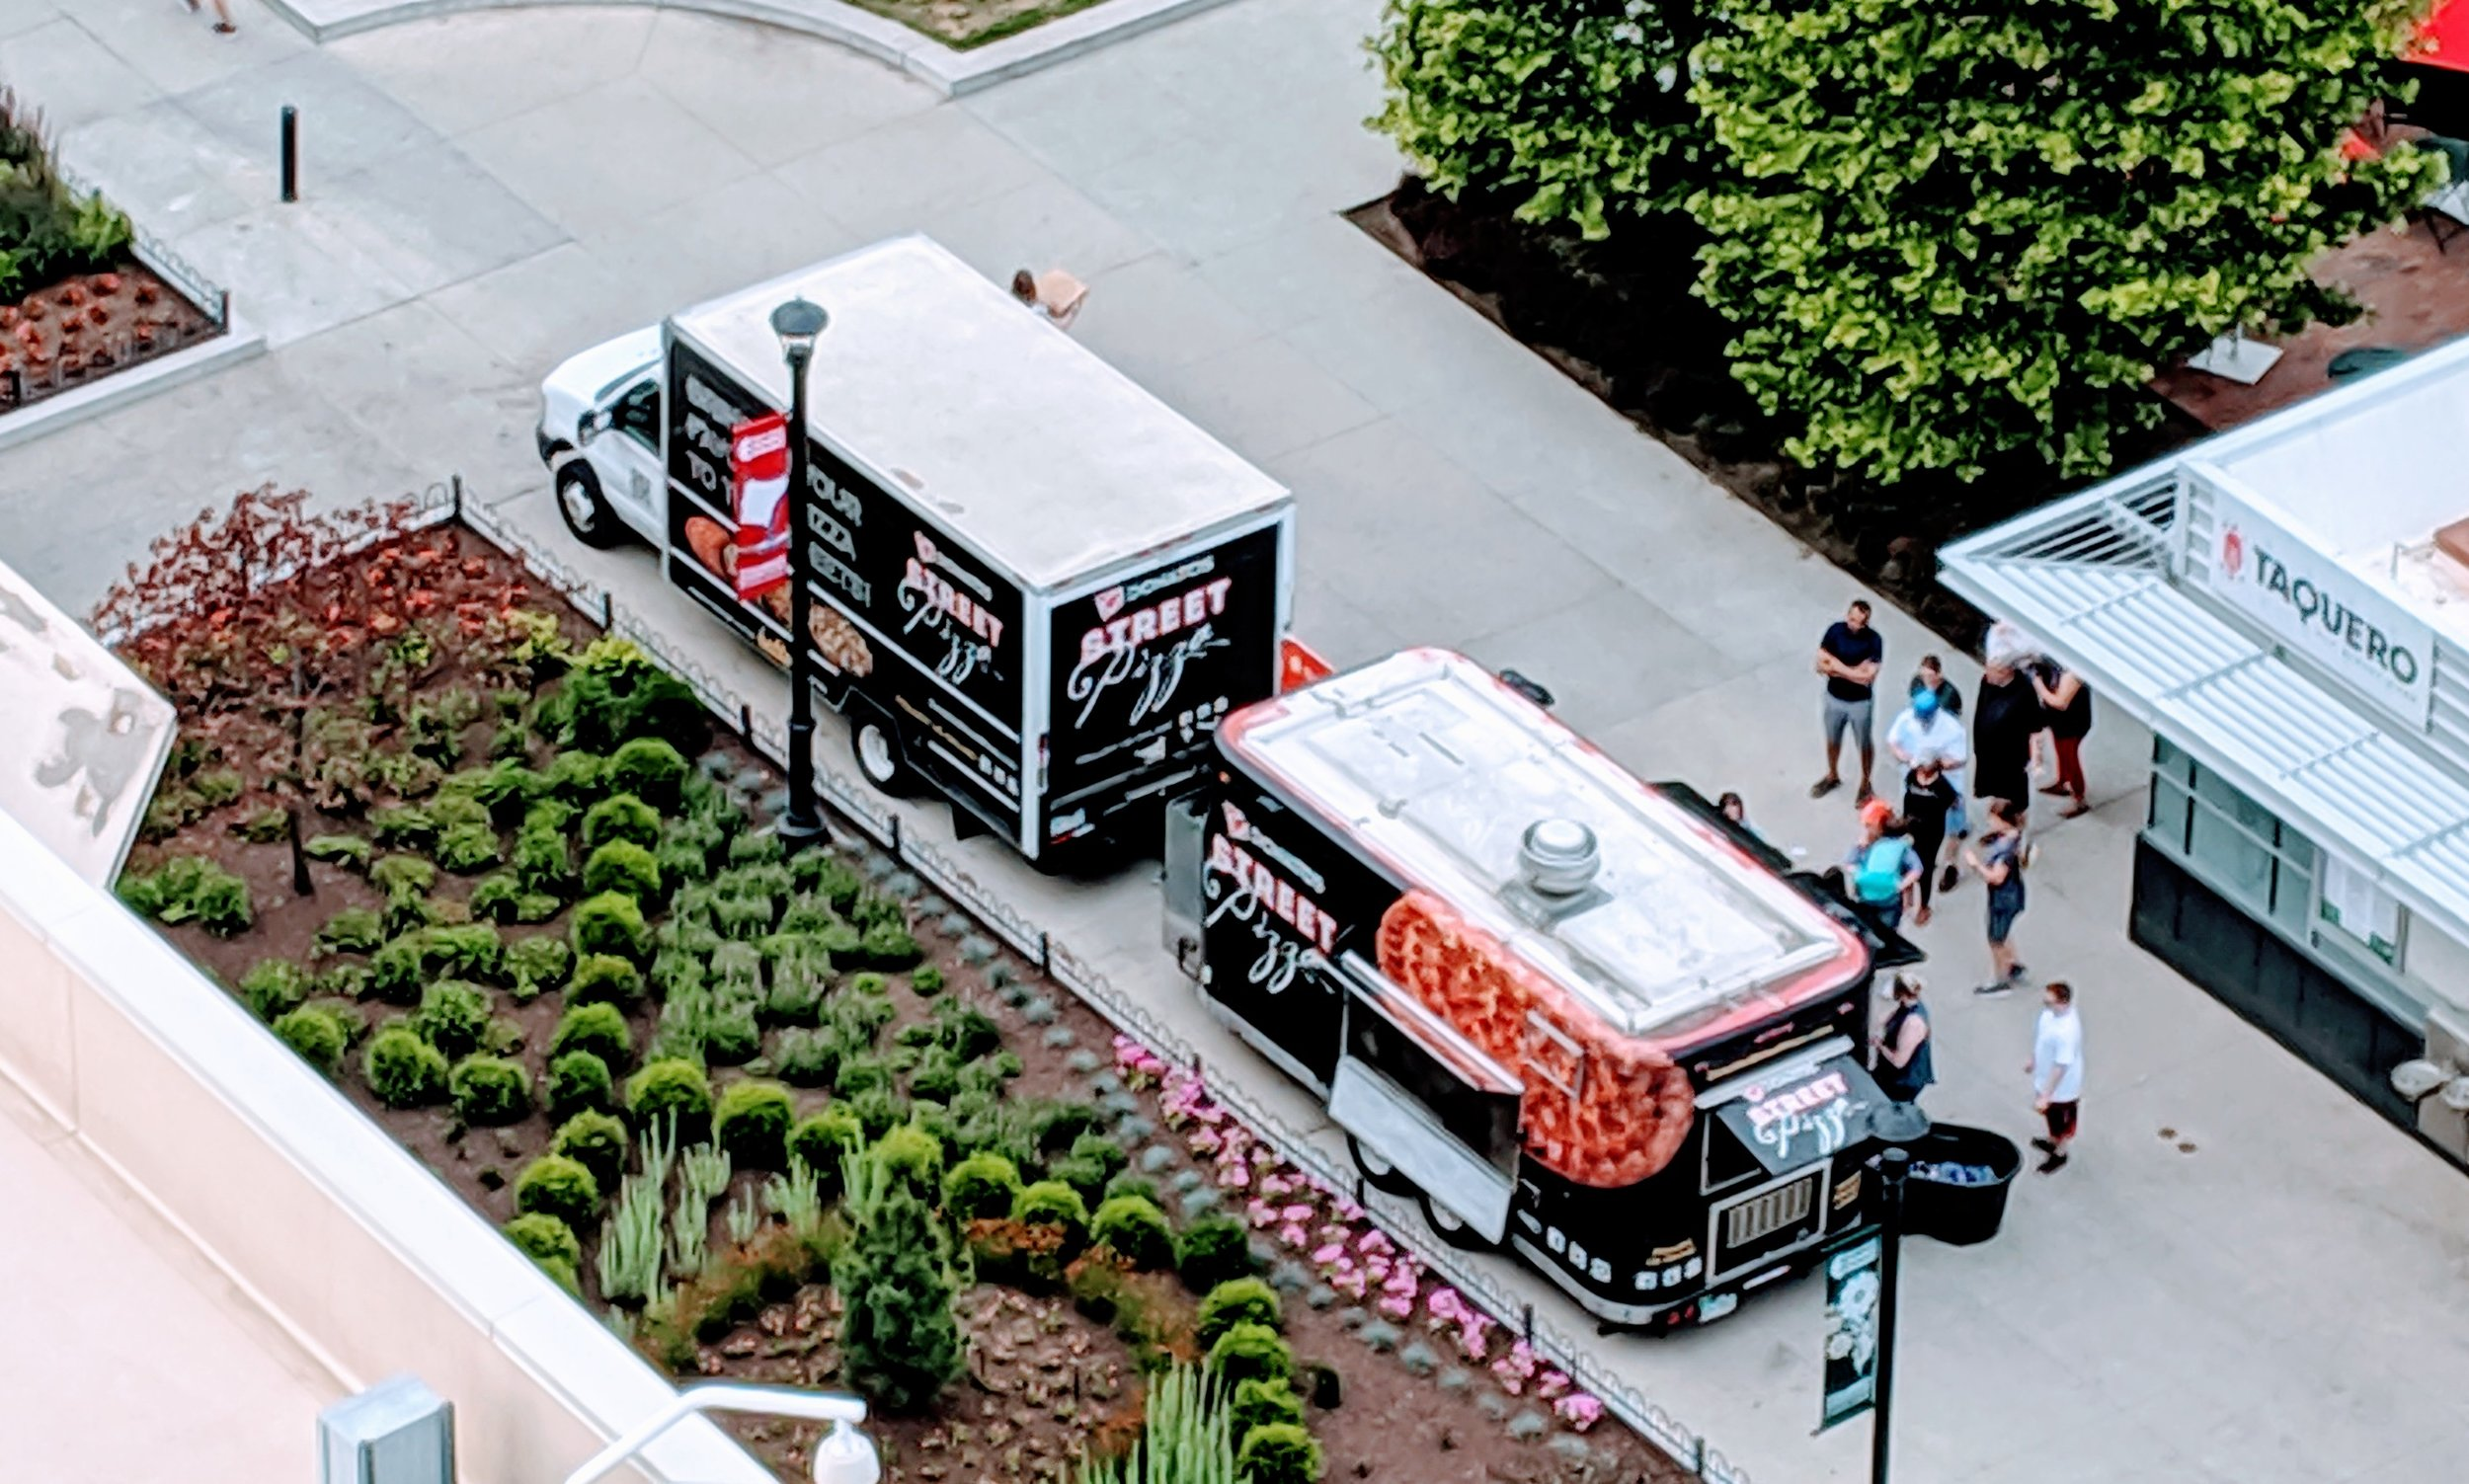 Donatos Food Truck at the Columbus Commons, Harmony Project Concert. June 6, 2019.